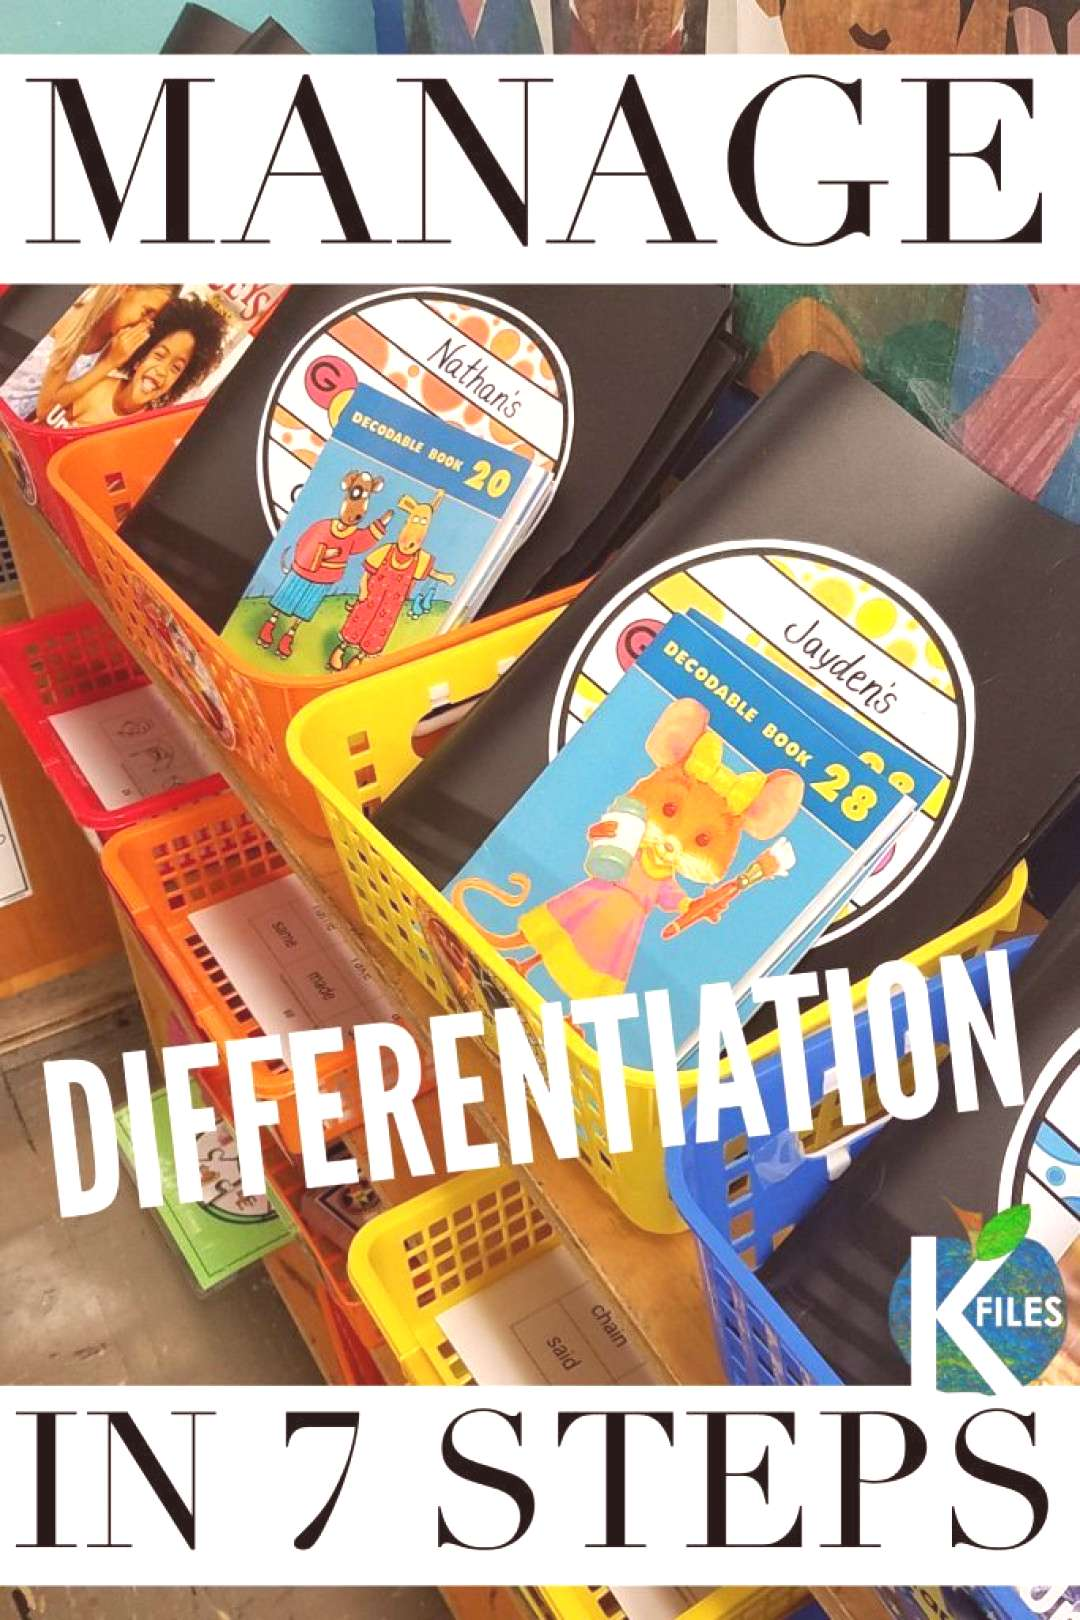 Words Their Way OUR Way PART 1 Getting Started - The K Files Differentiate your Word Study groups